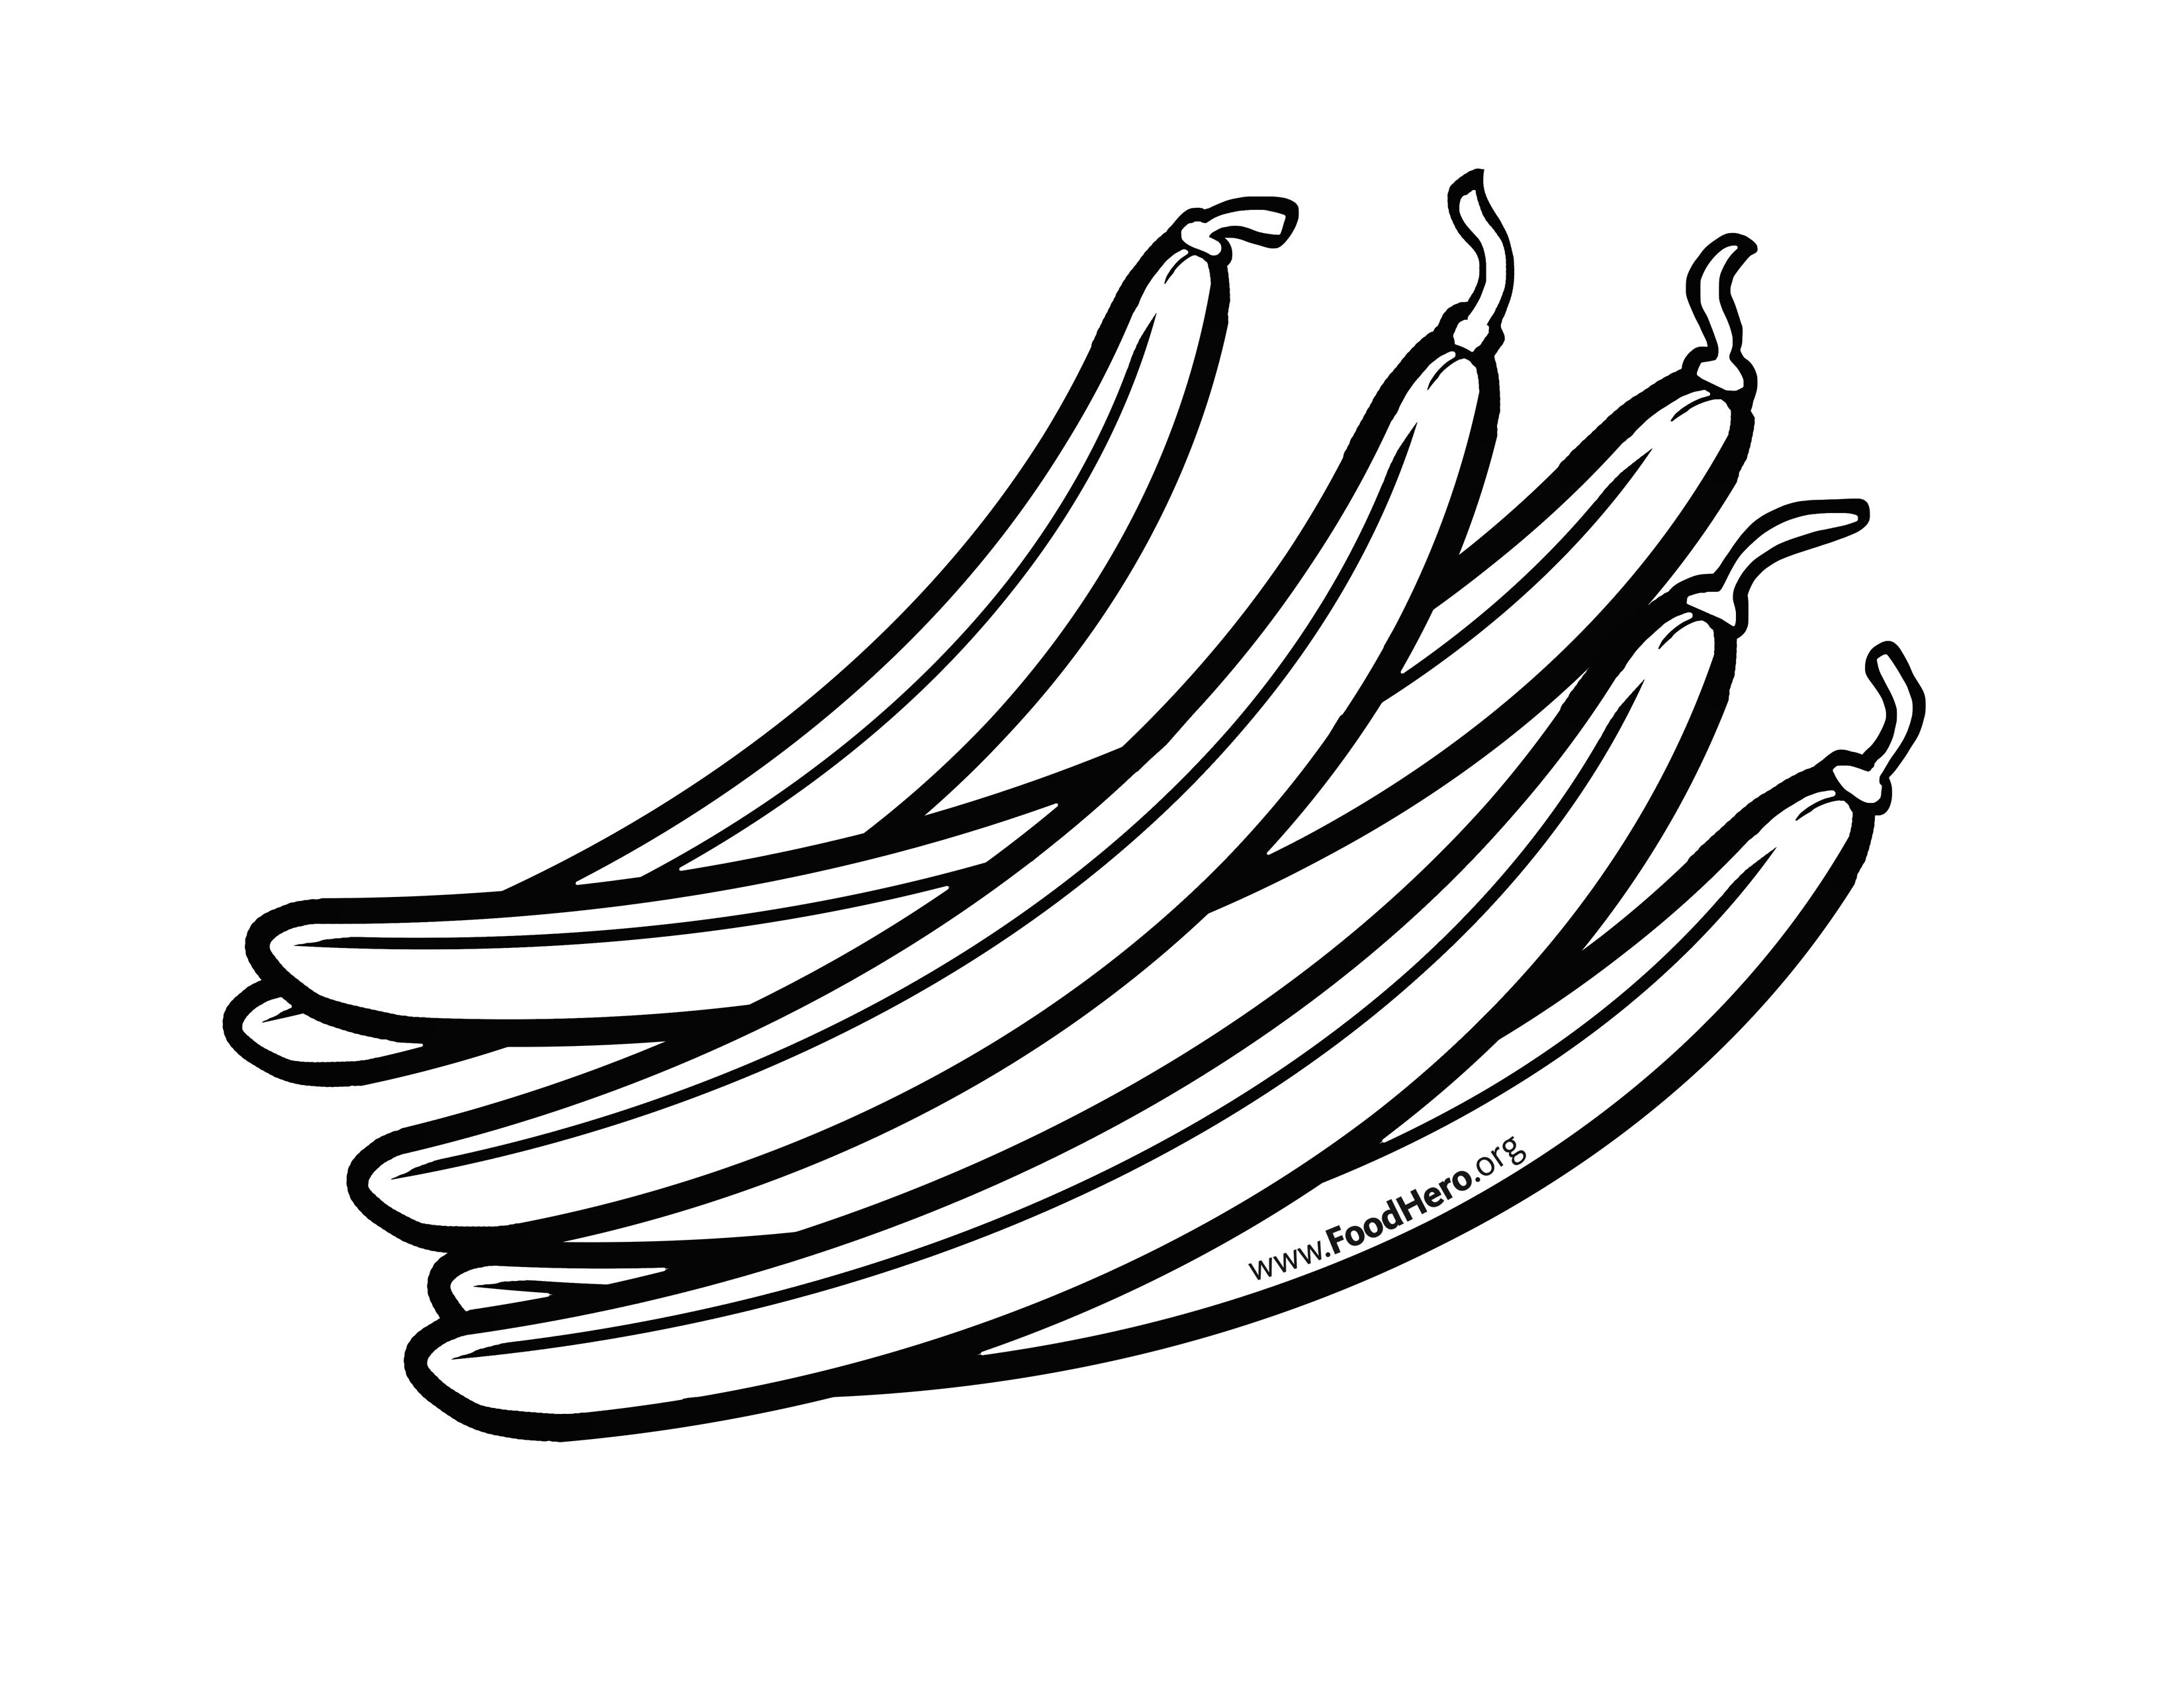 Beans clipart drawing. String free download best